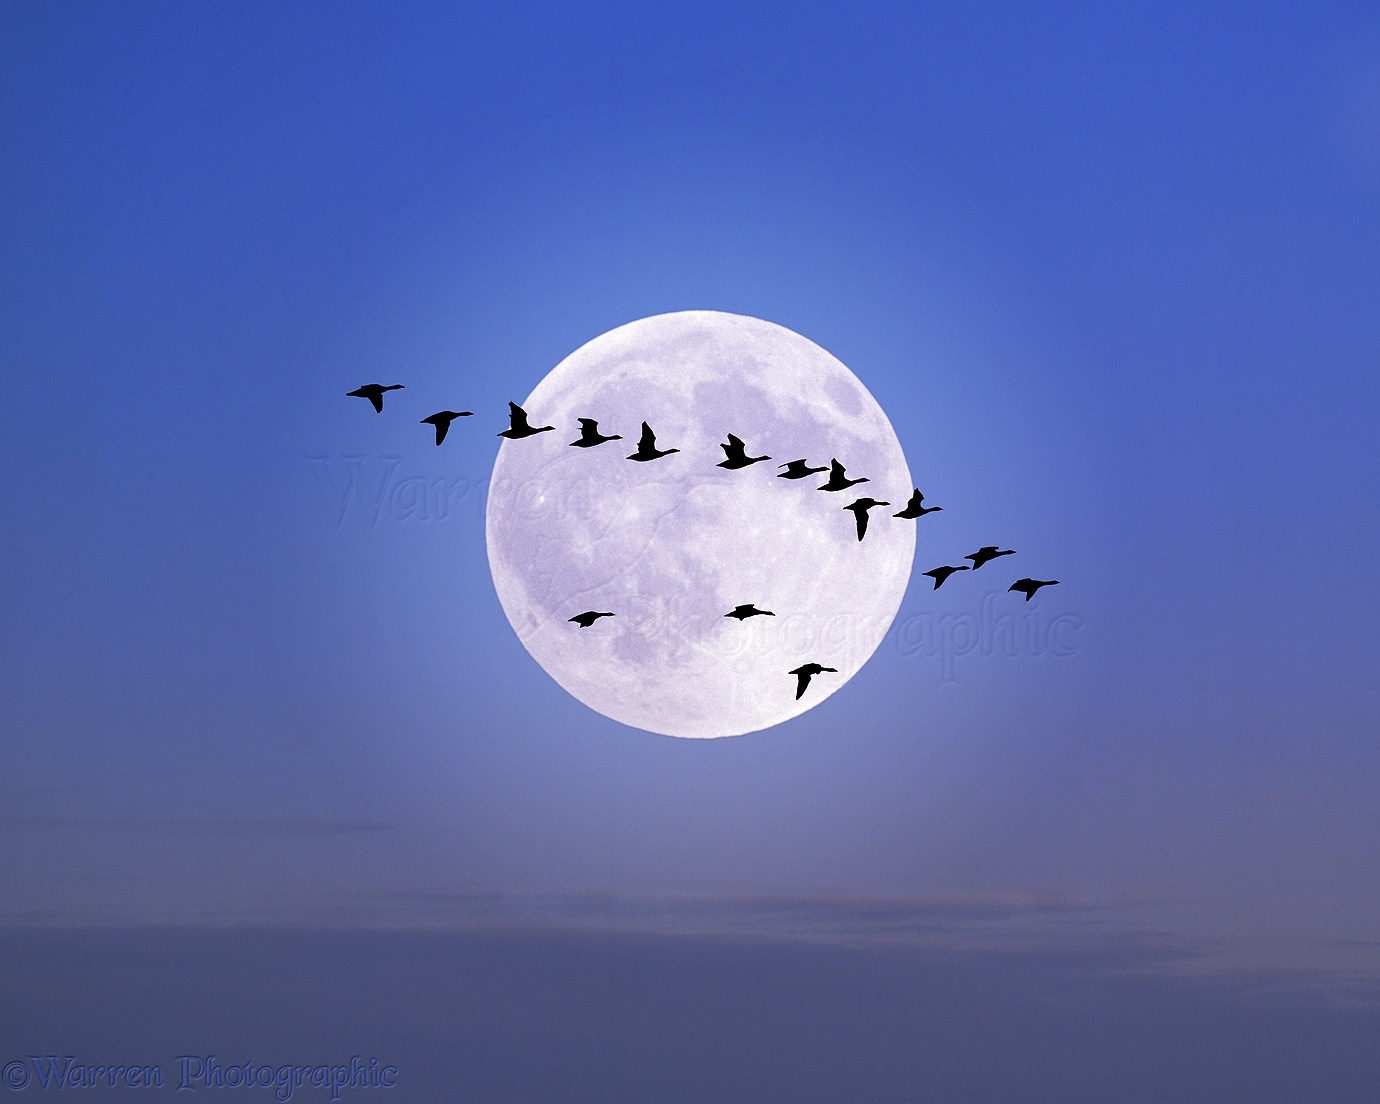 Image result for Geese in the moonlight images